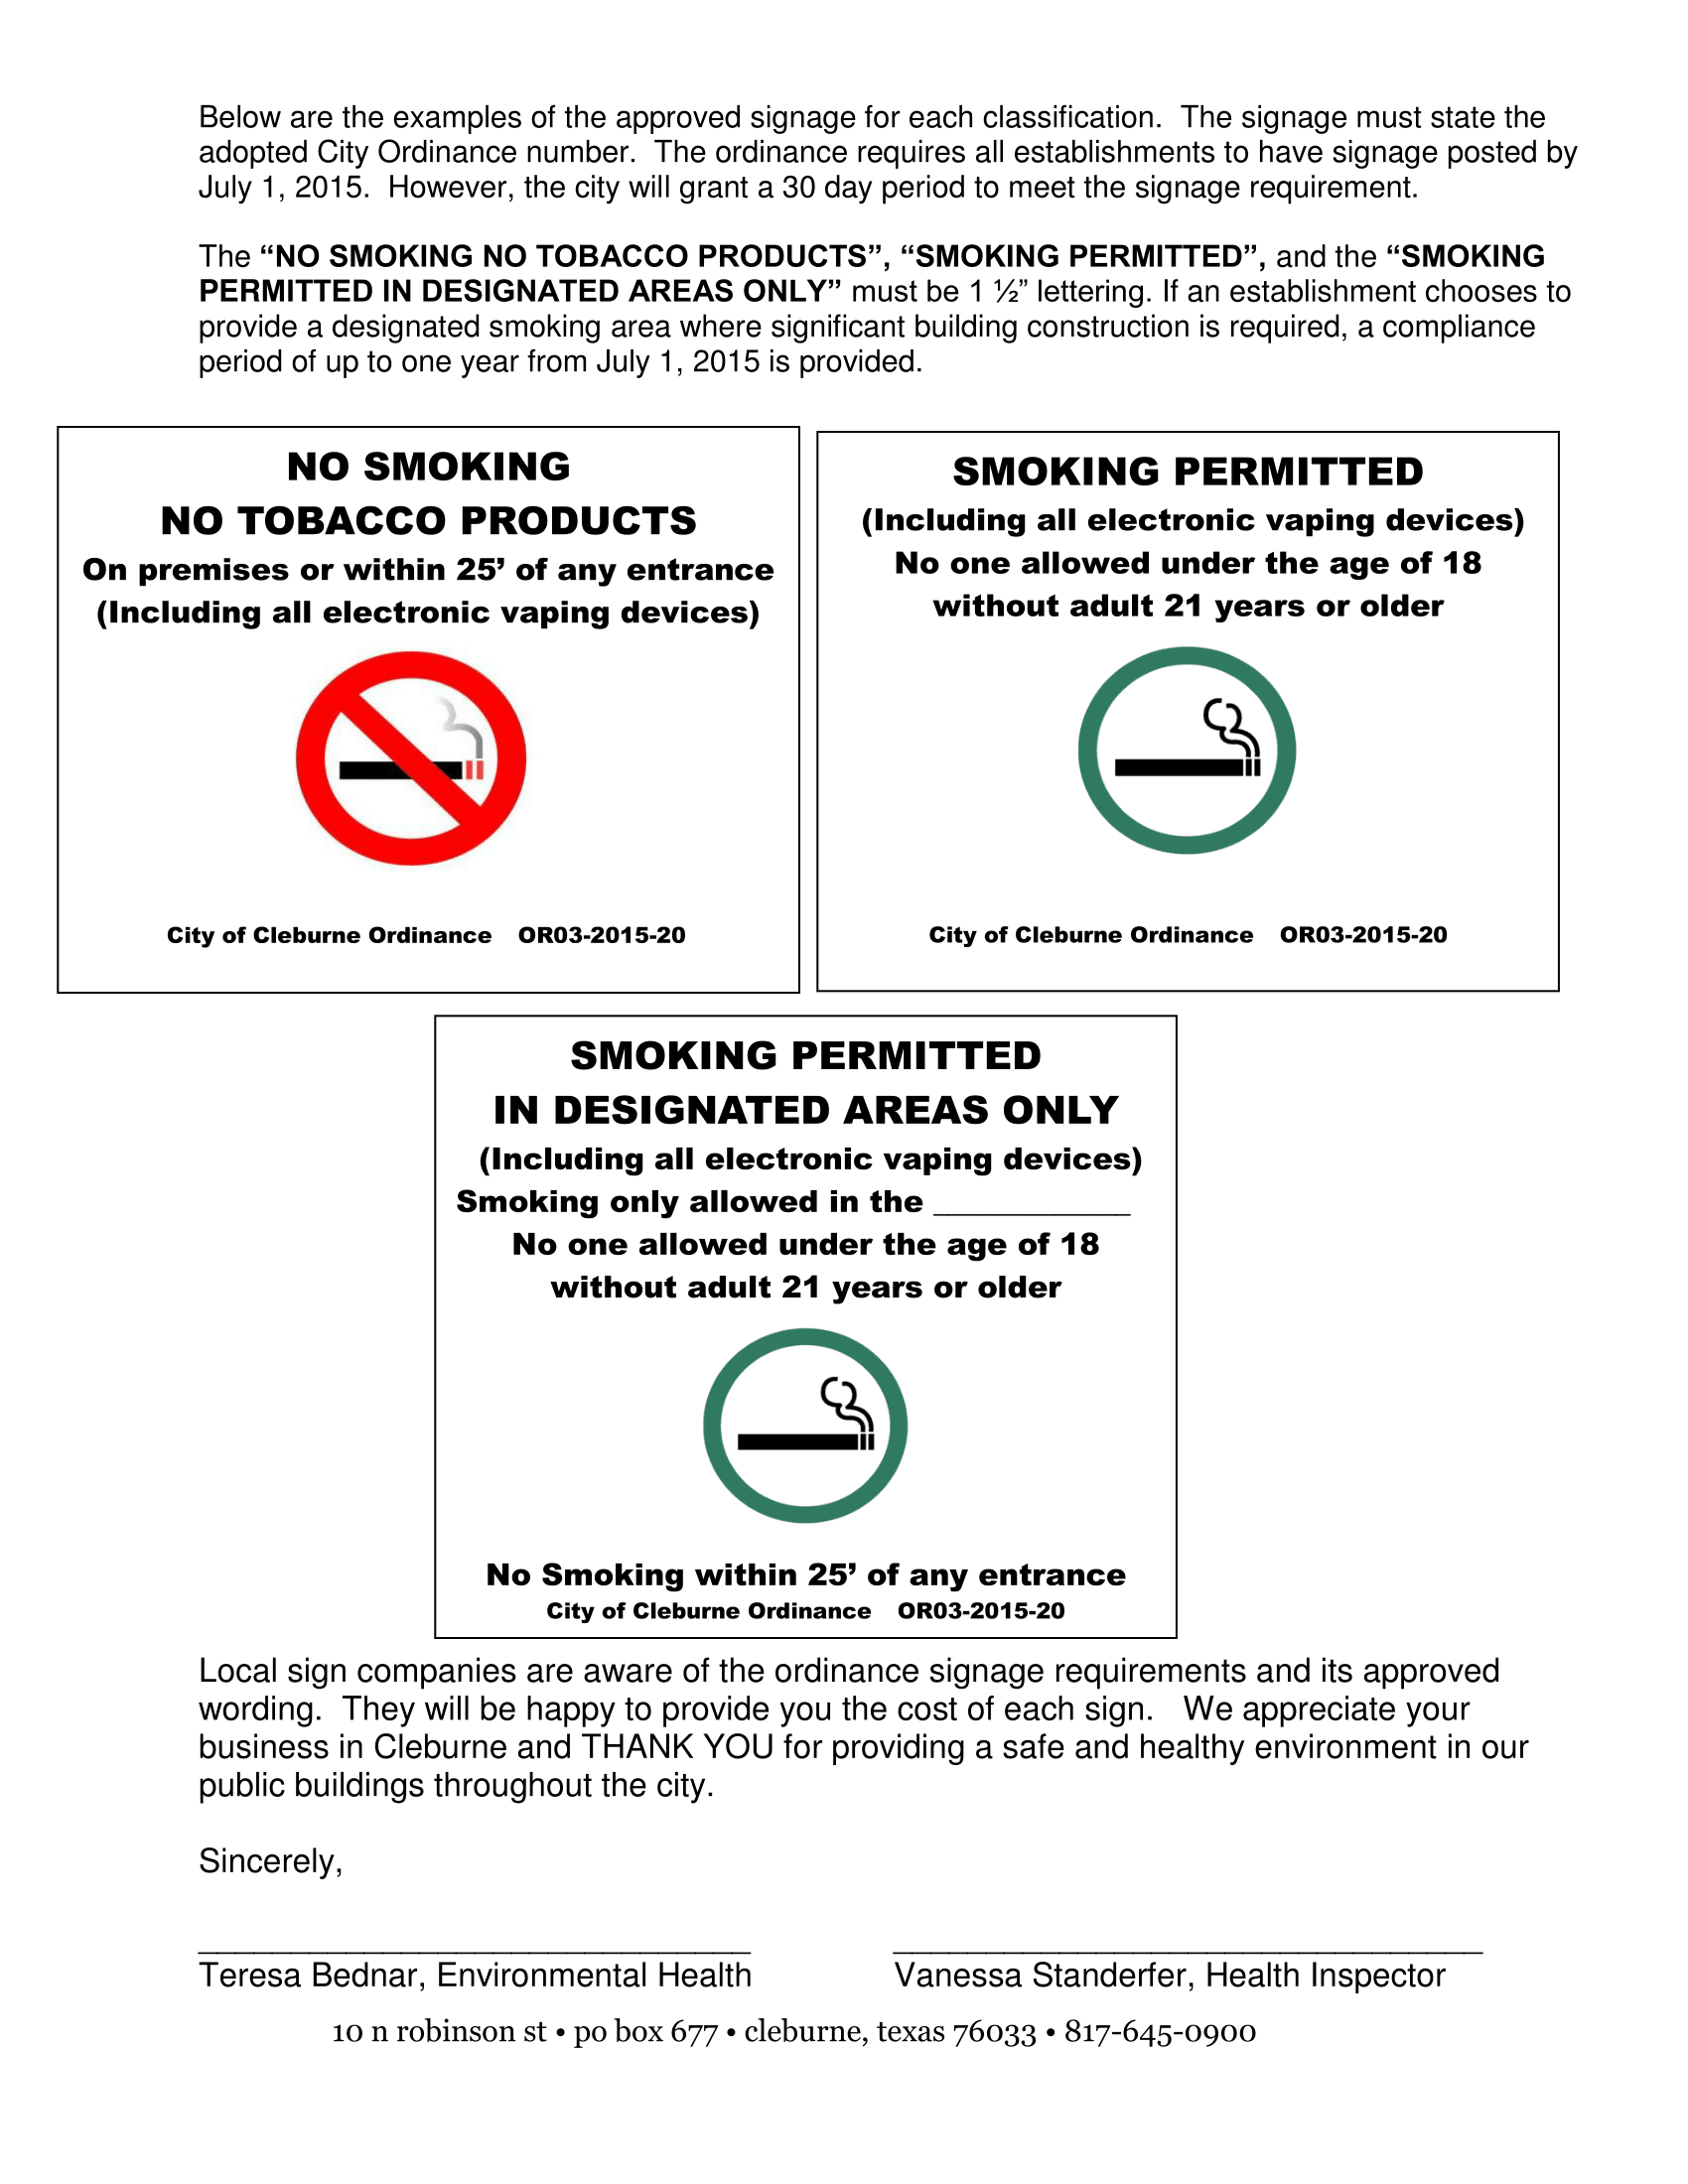 Smoking Letter for Public Buildings-2.png